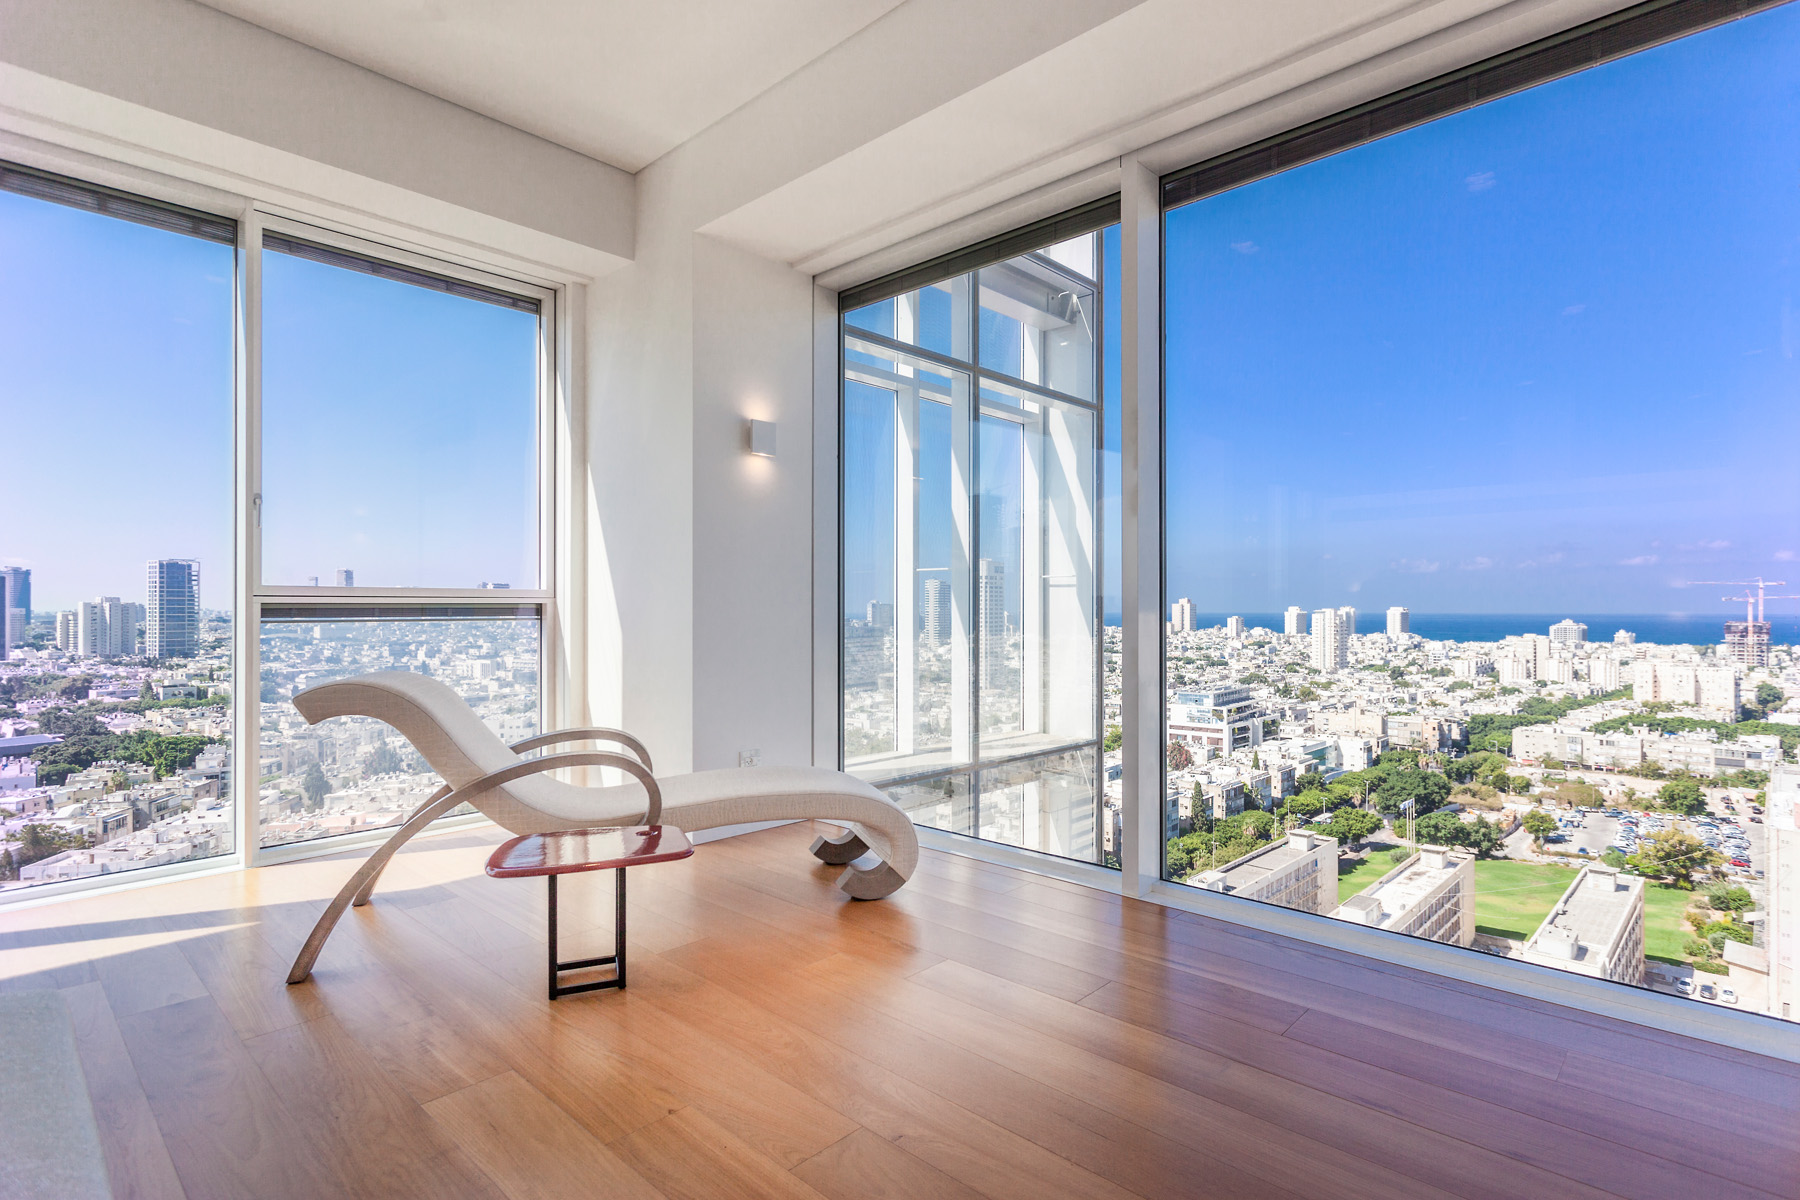 Appartement pour l Vente à Modern Luxury Apartment With Incomparable Views Tel Aviv, Israel Israël